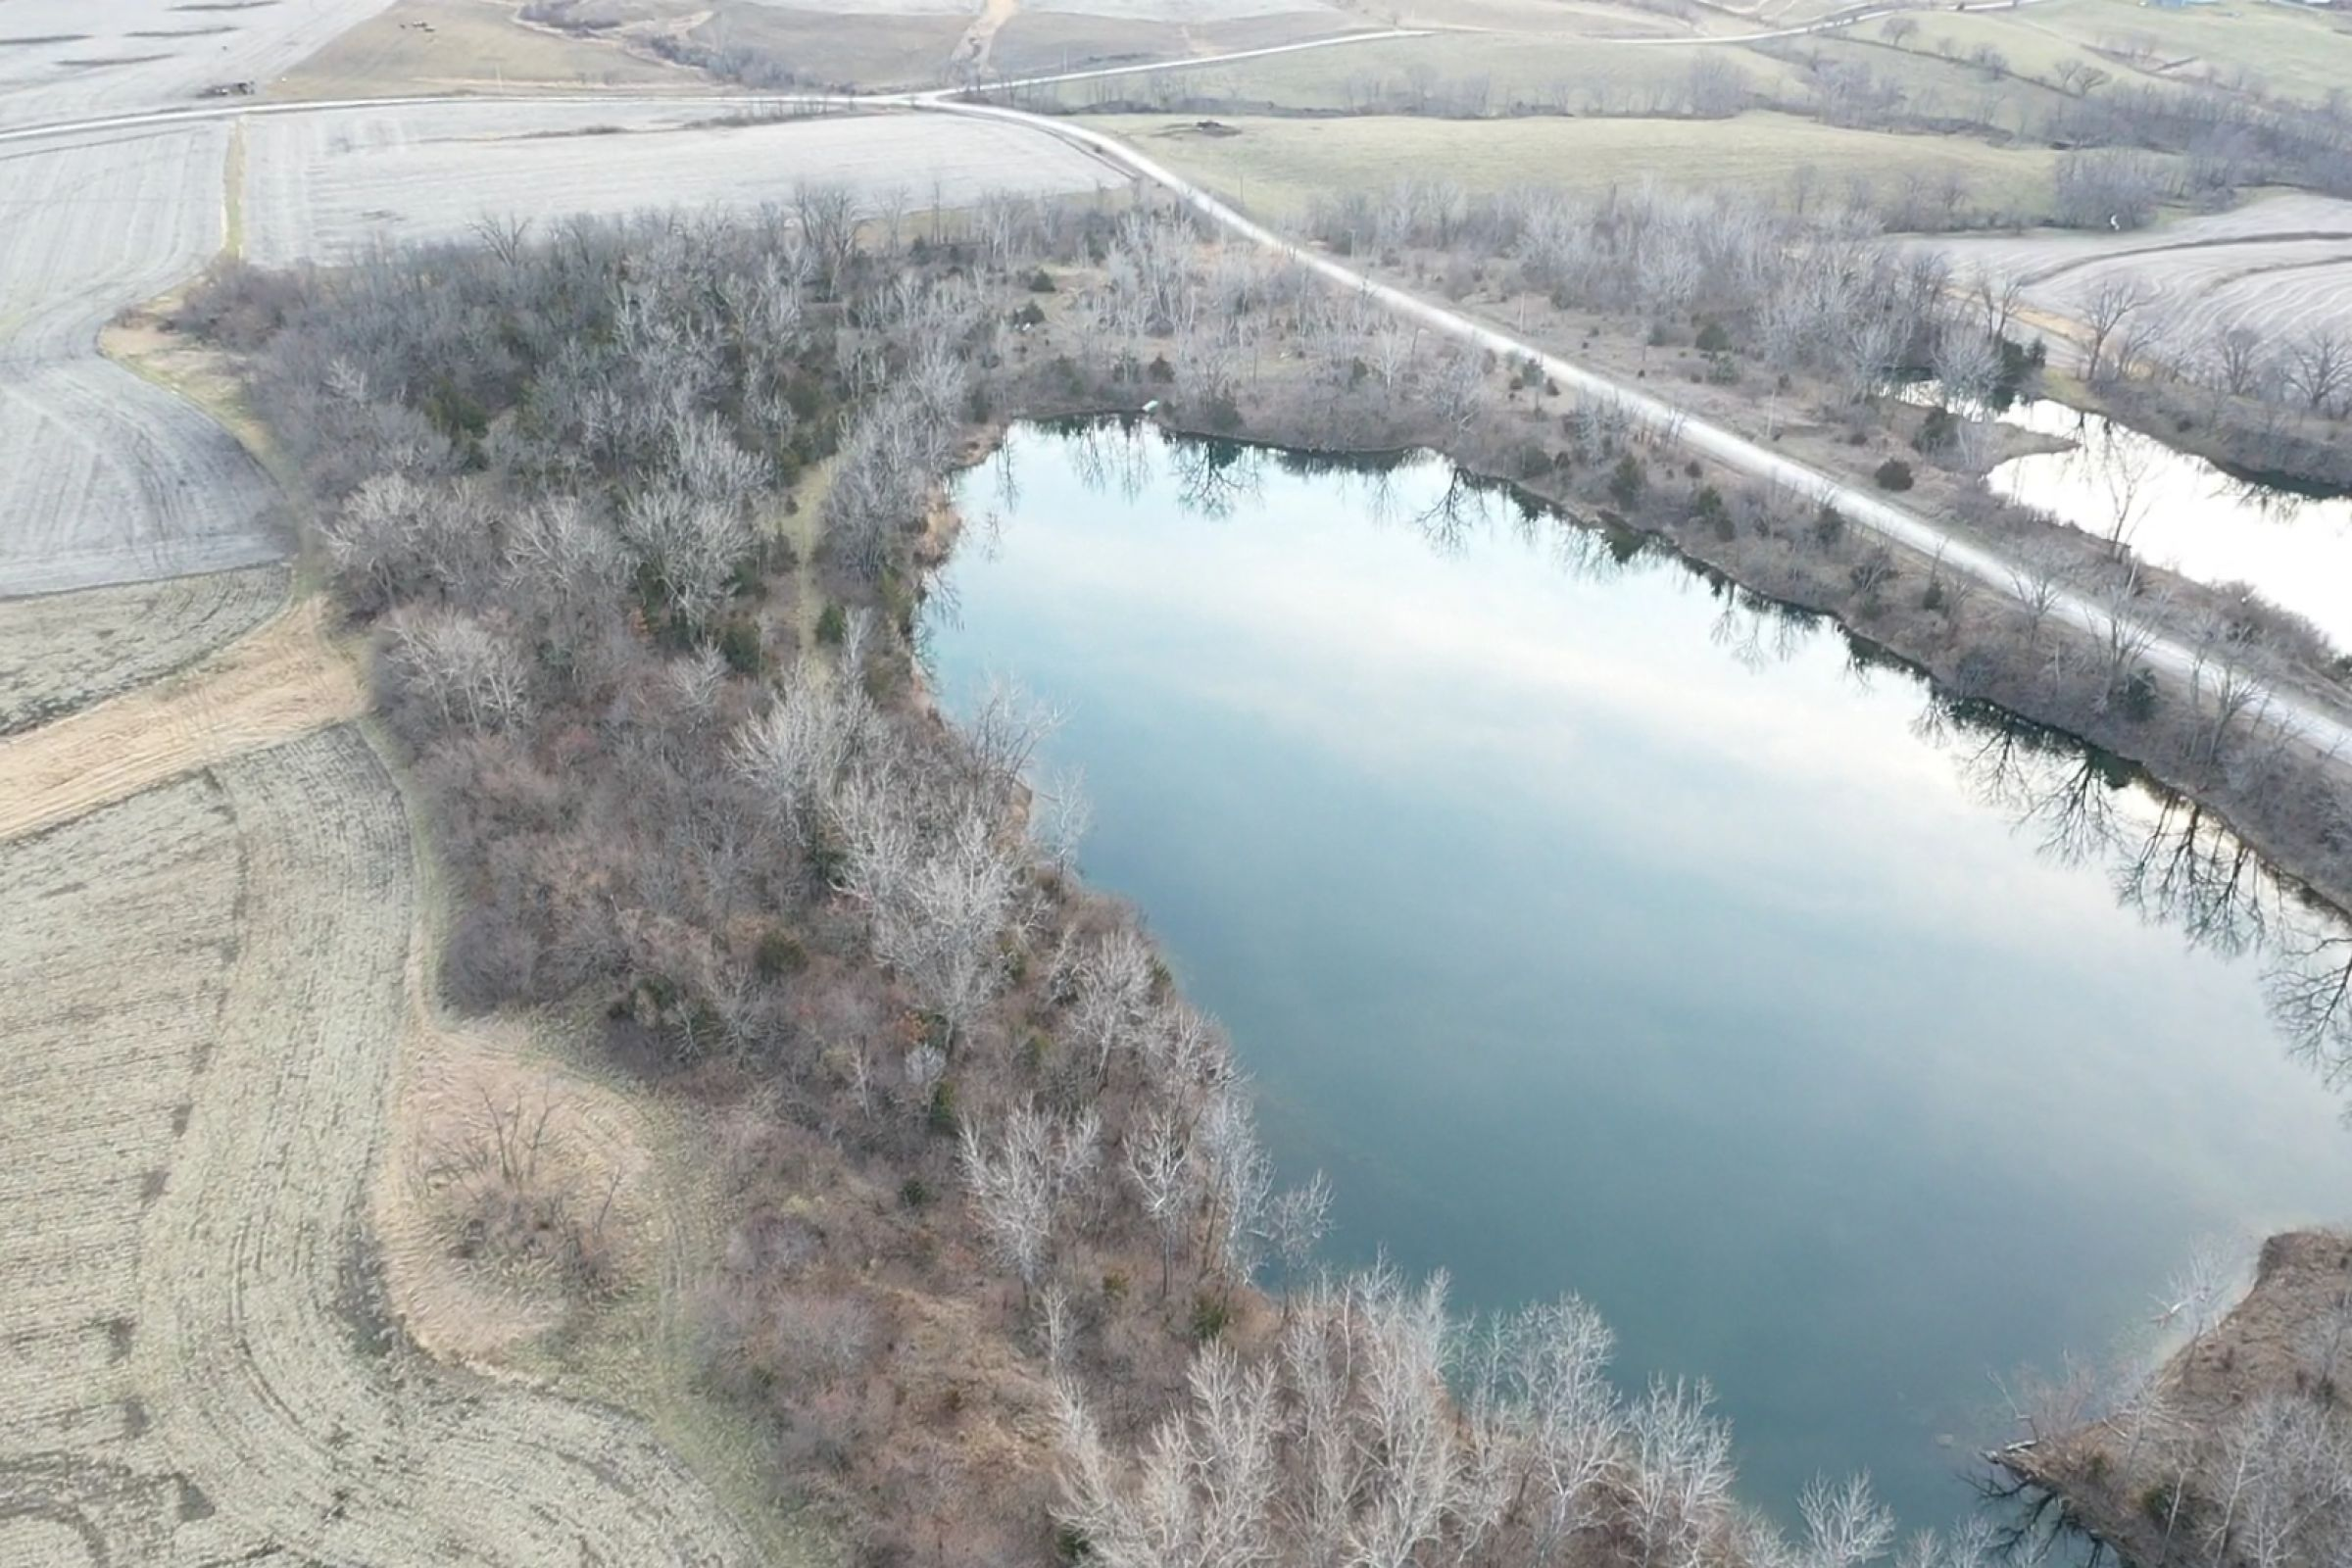 land-marion-county-iowa-60-acres-listing-number-15303-4-2020-12-15-222539.jpg